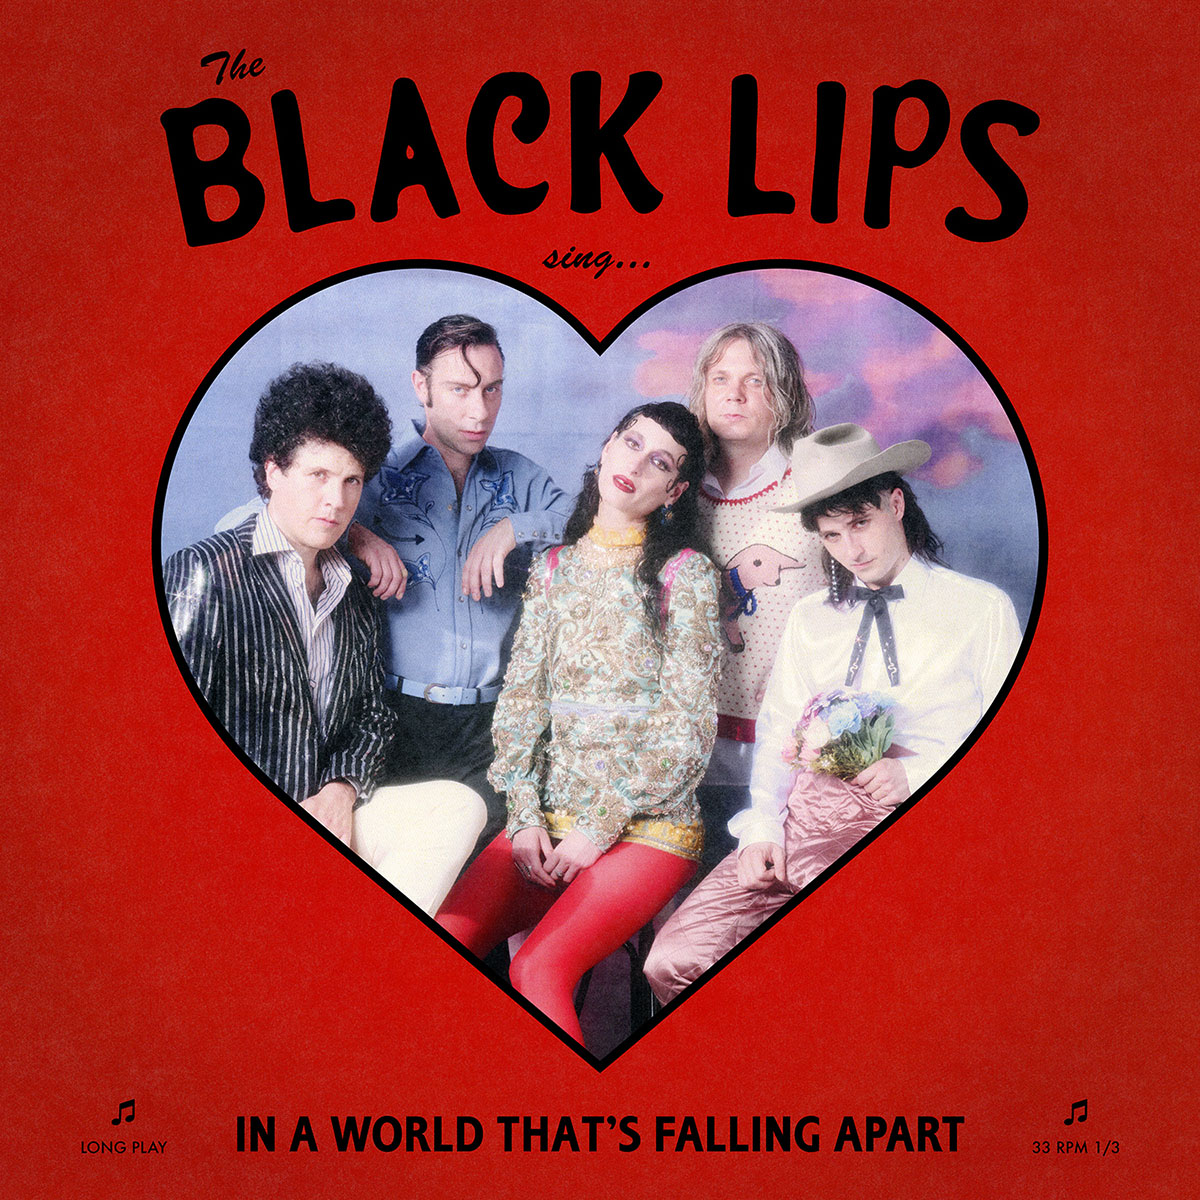 The Black Lips - The Black Lips sing in a World That's Falling Apart